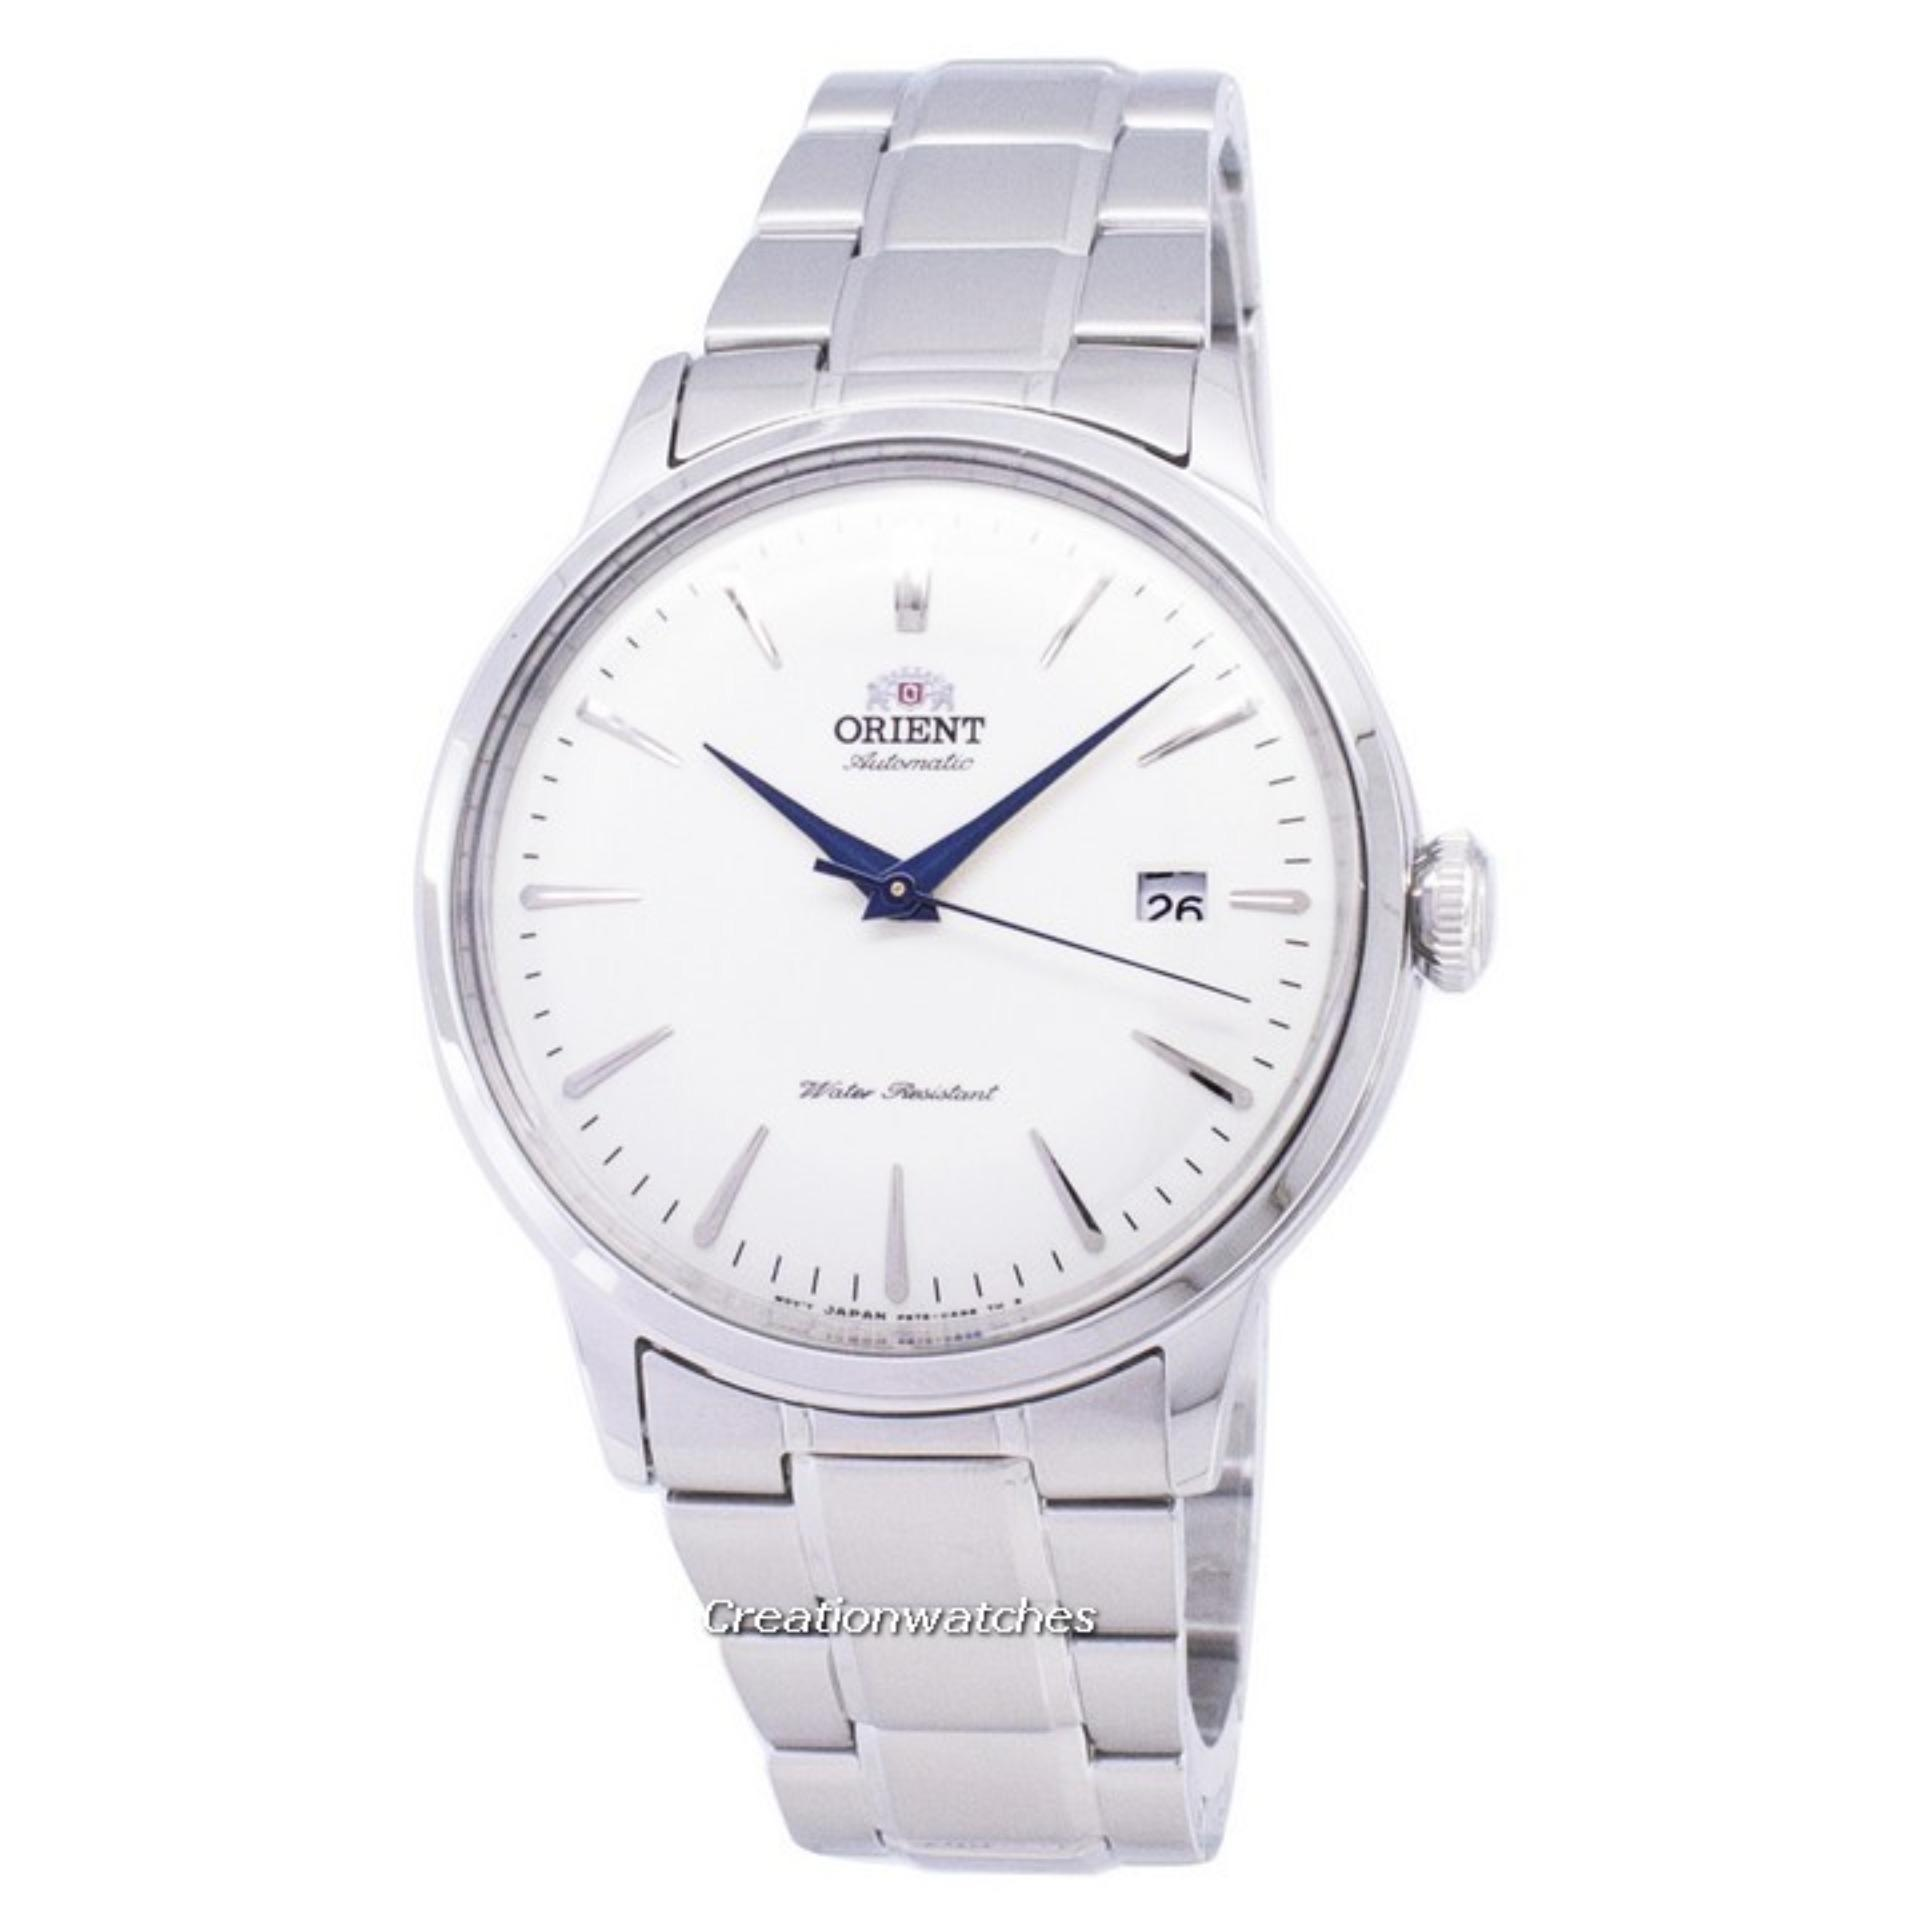 Orient Bambino Automatic Men's Silver Stainless Steel Bracelet Watch RA-AC0005S10B